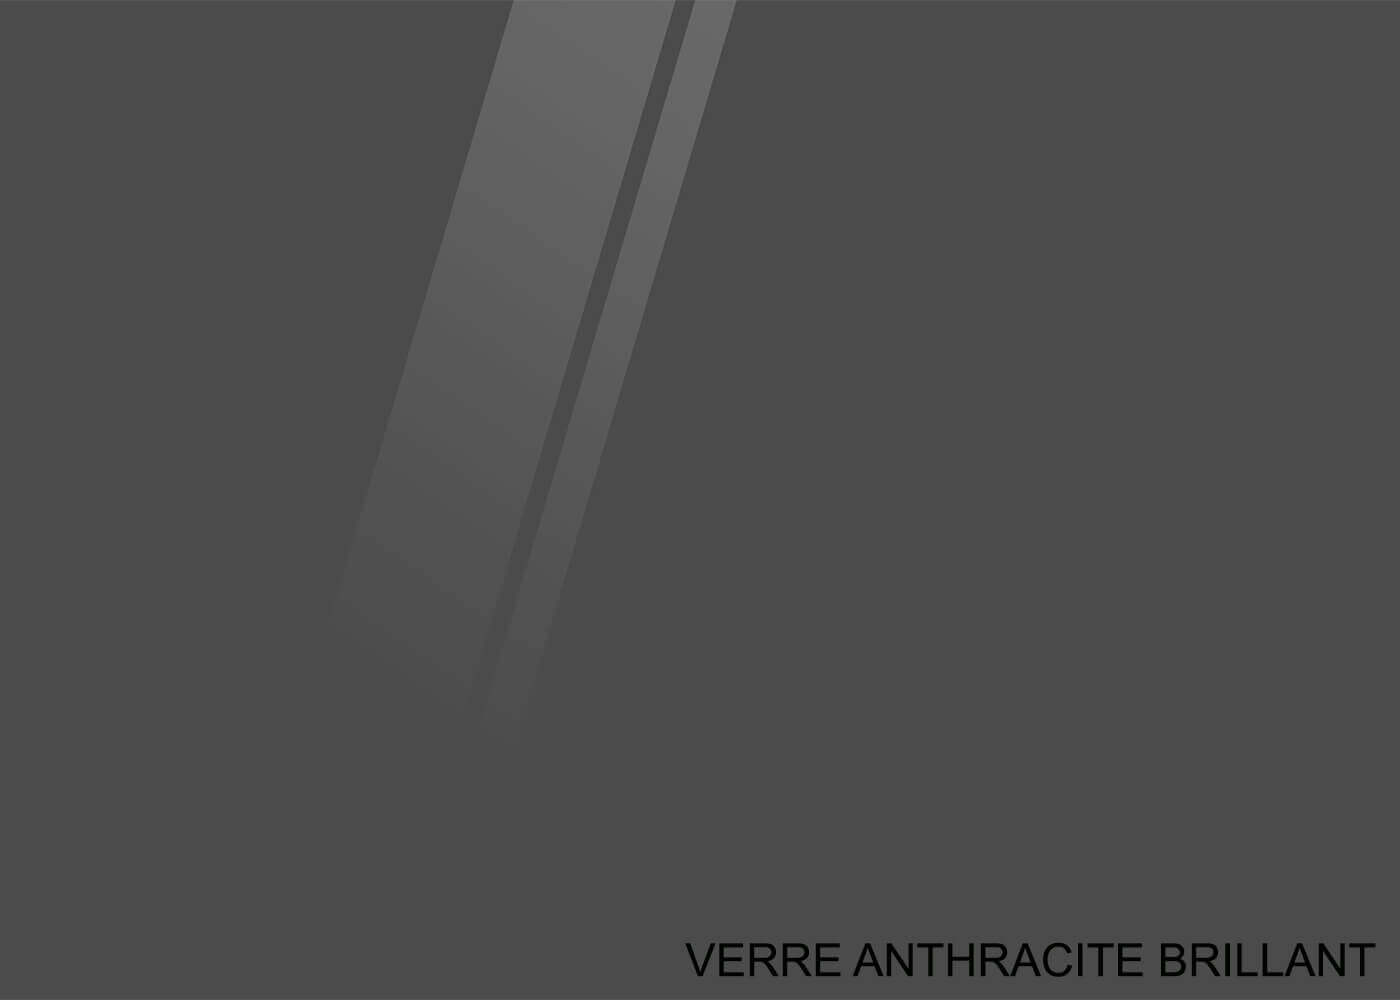 VERRE ANTHRACITE BRILLANT